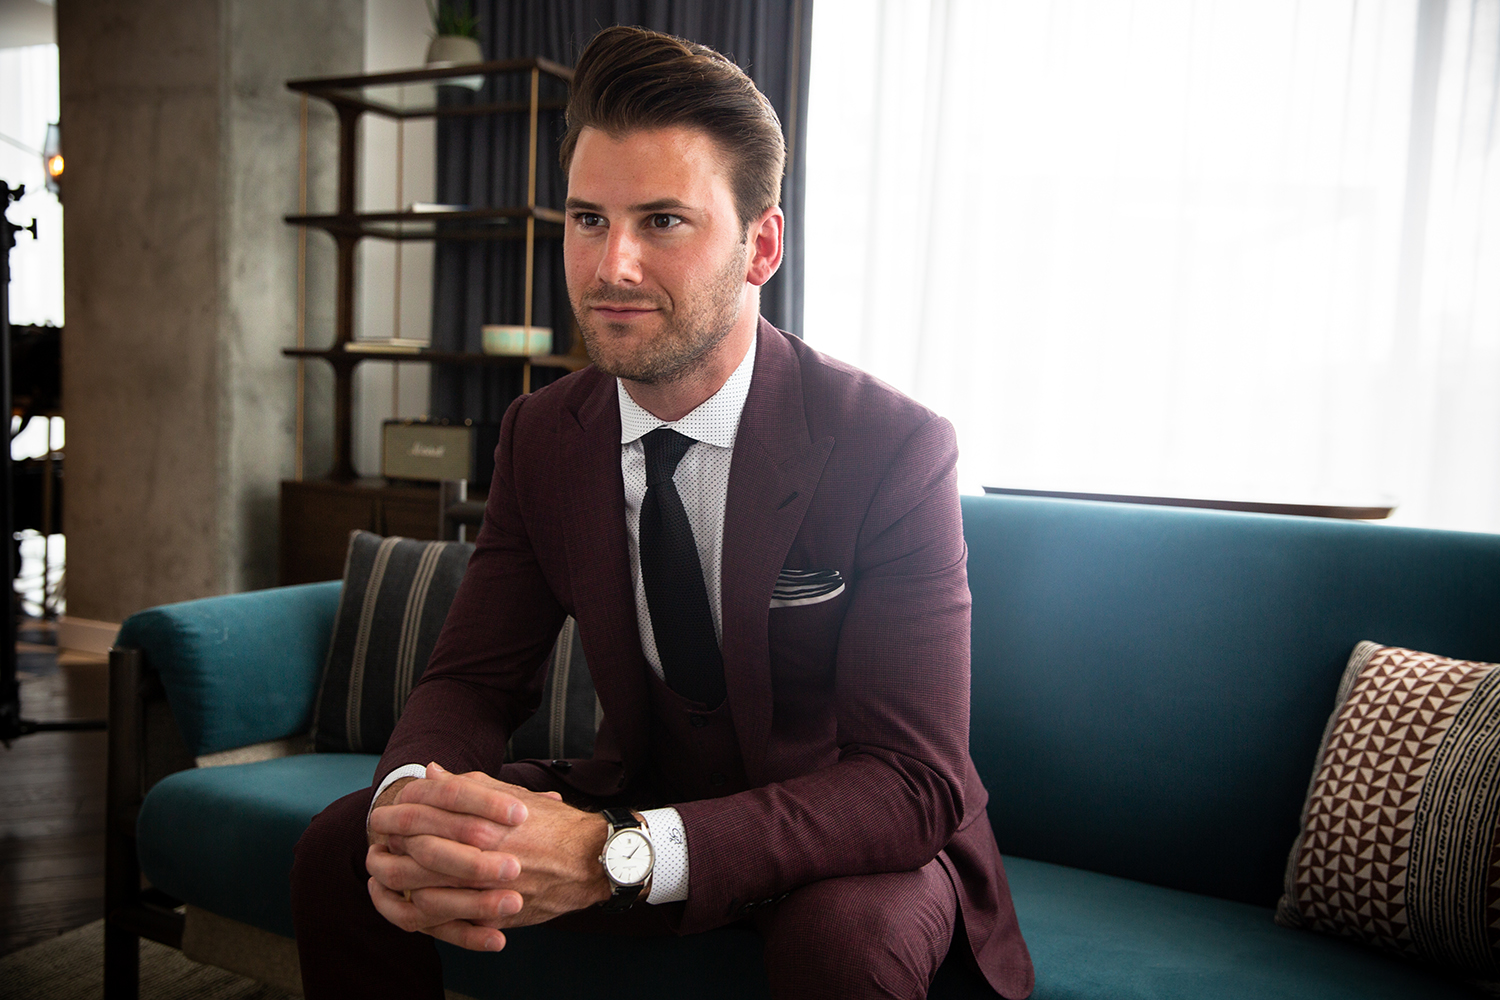 Stephen Richards of Richards Bespoke wearing a wine colored suit sitting at The Thompson Hotel Nashville.